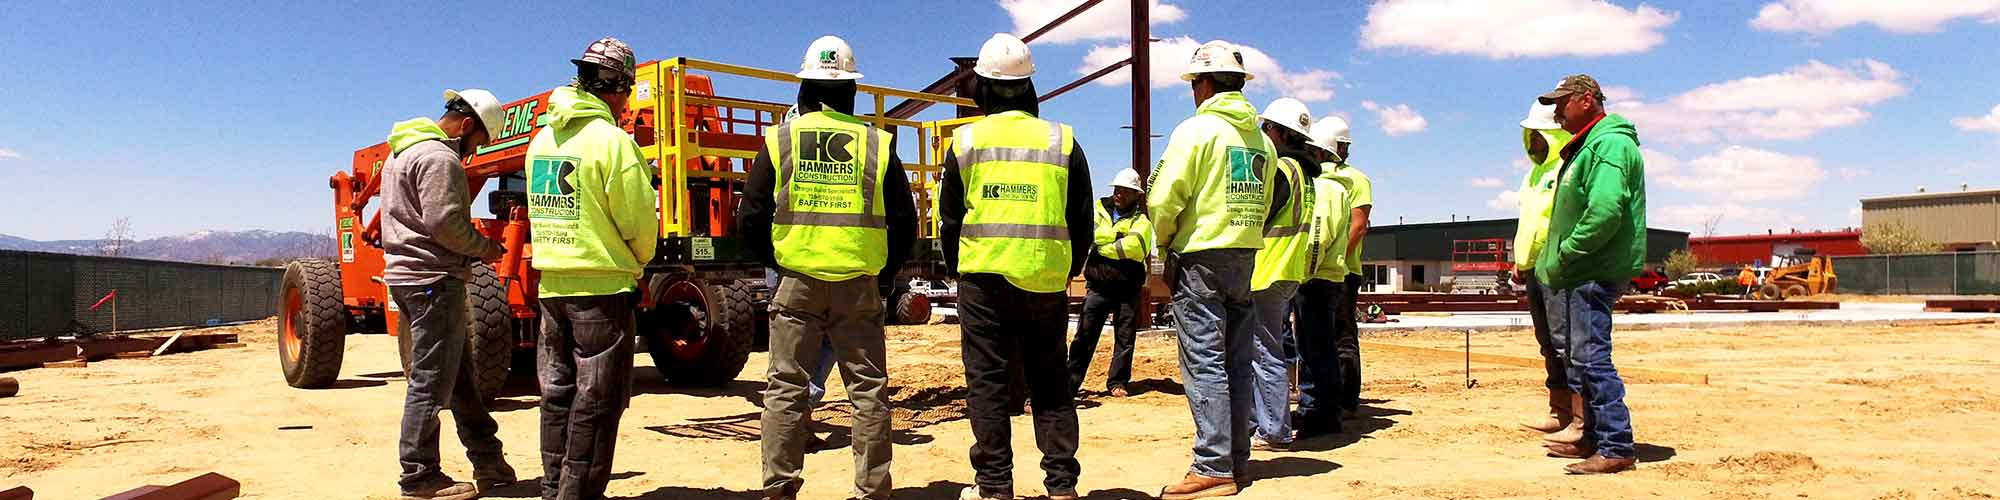 Construction careers in Colorado Springs & Denver, CO